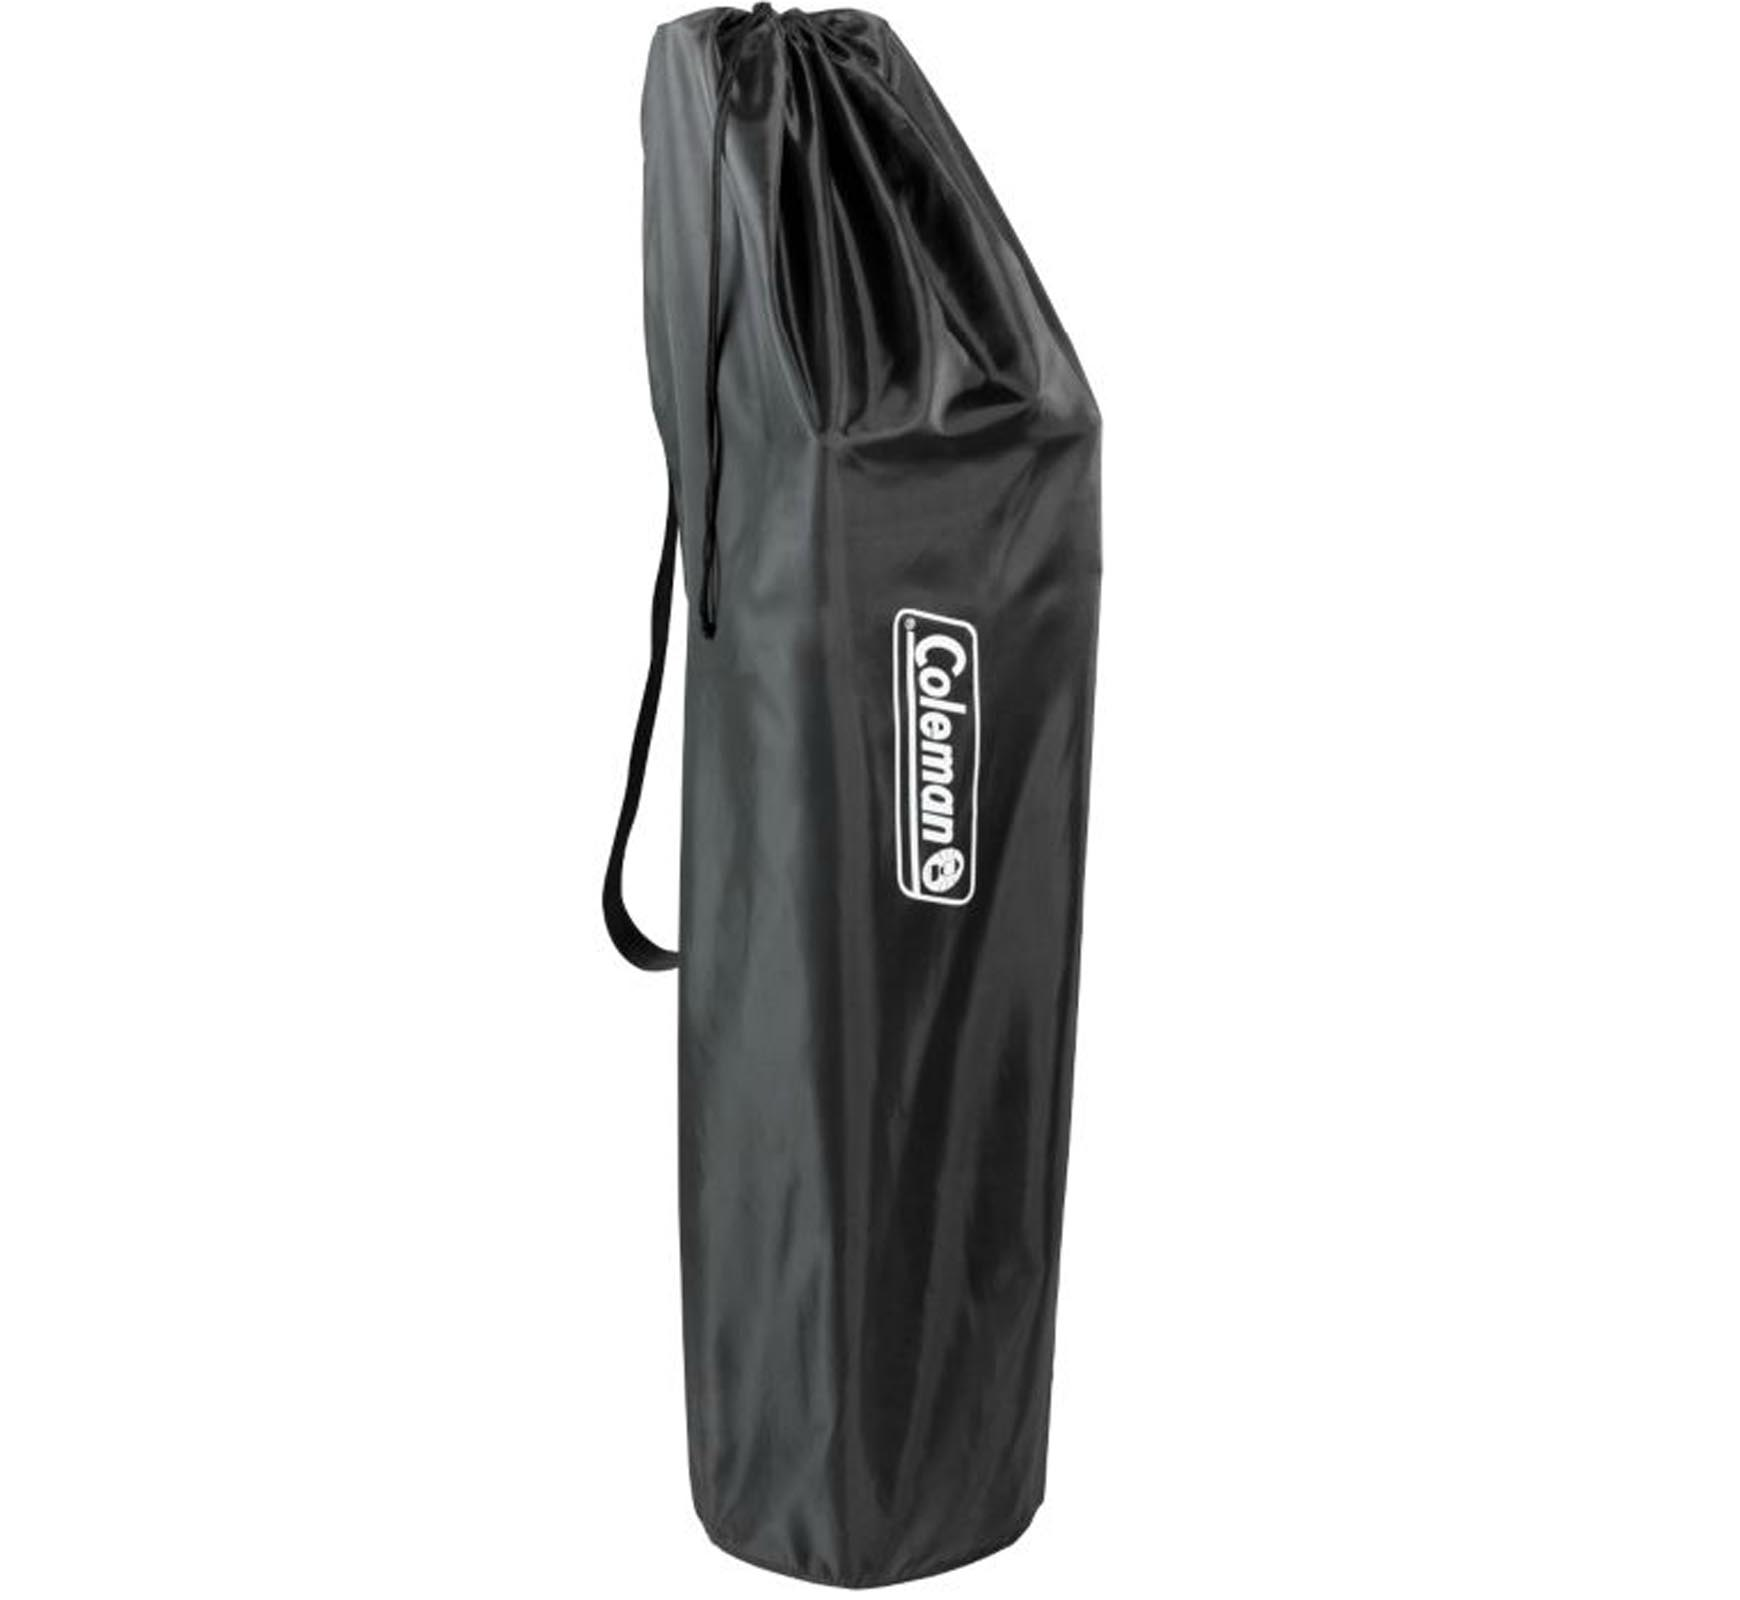 Coleman Comfortsmart Chair New Coleman Comfortsmart Suspension Camping Chair W Mesh Back Bag Cup Holder